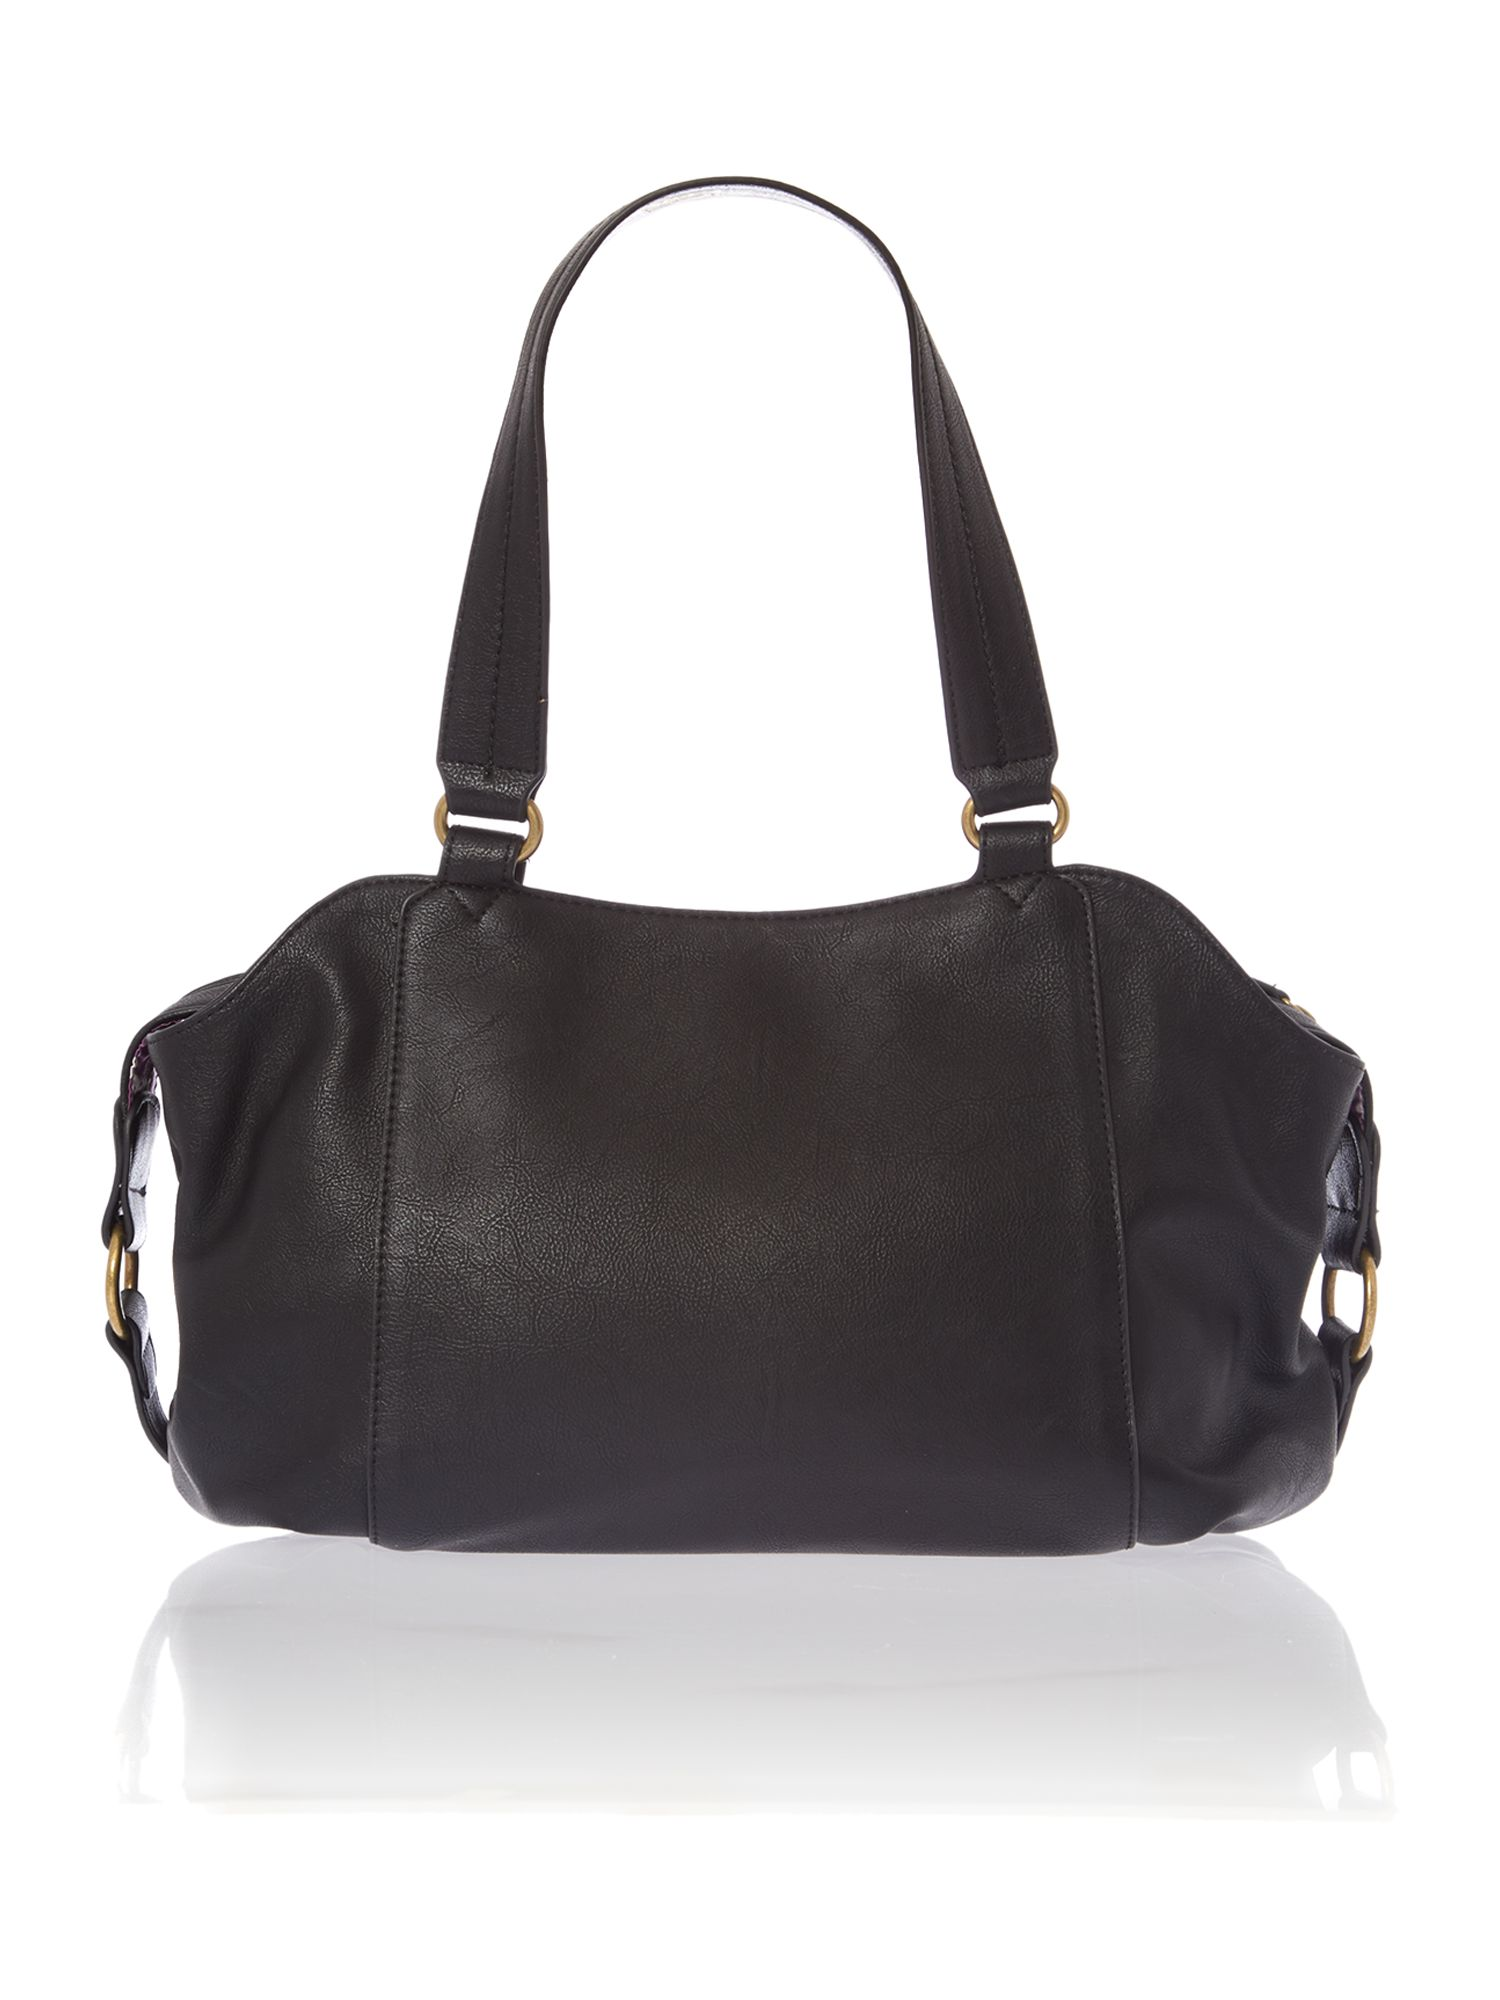 Judy black tote bag